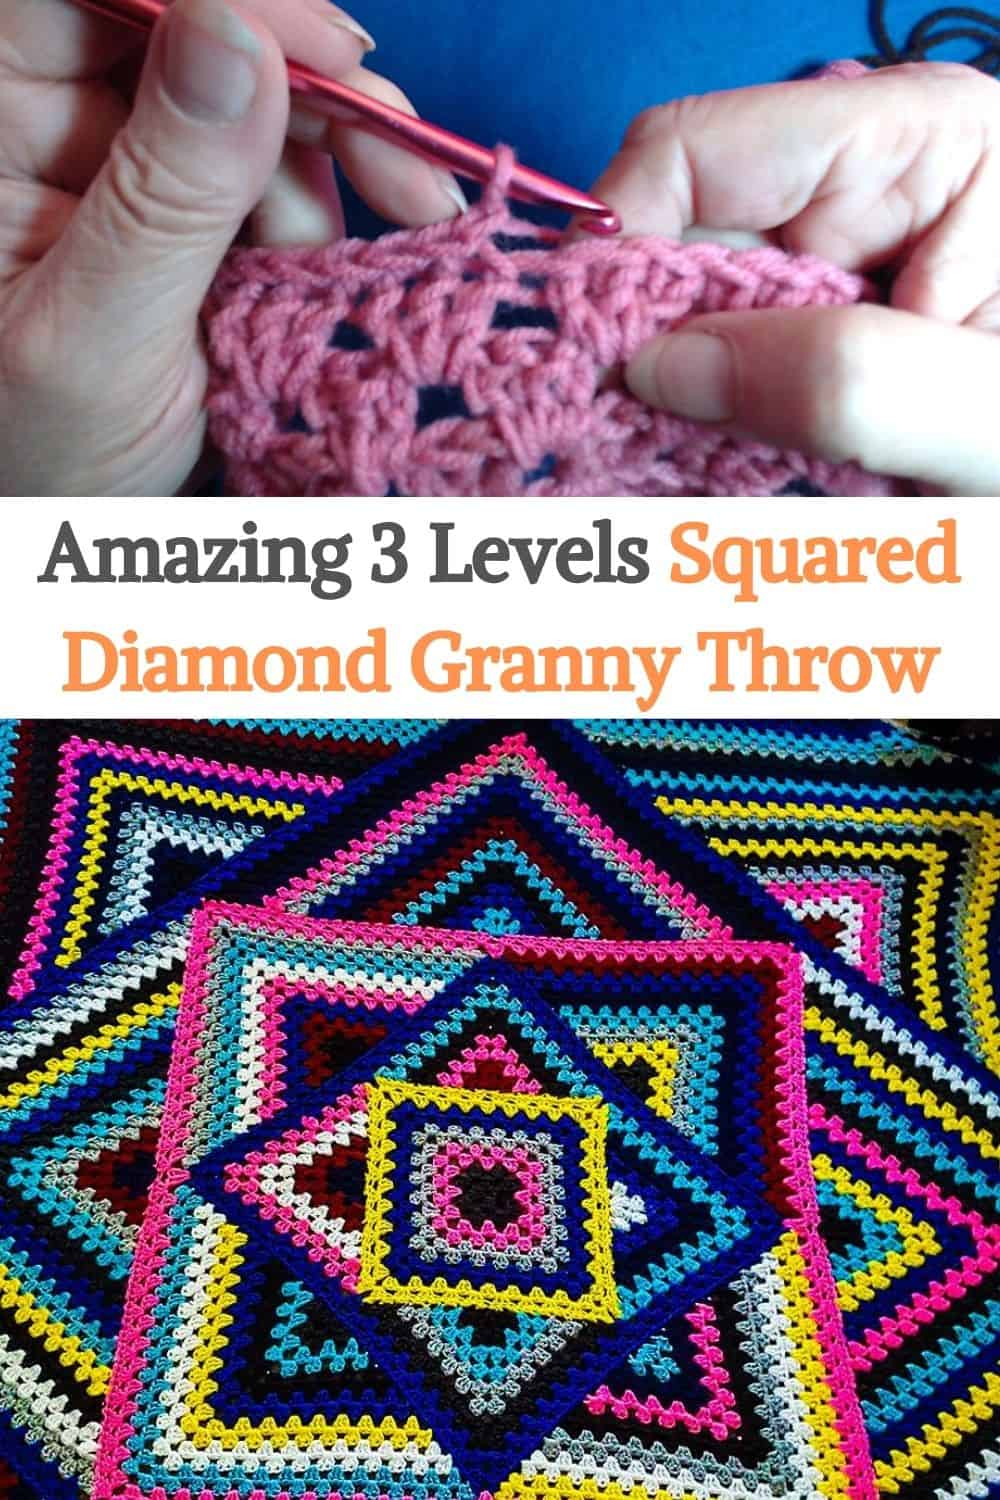 Squared Diamond Granny Throw